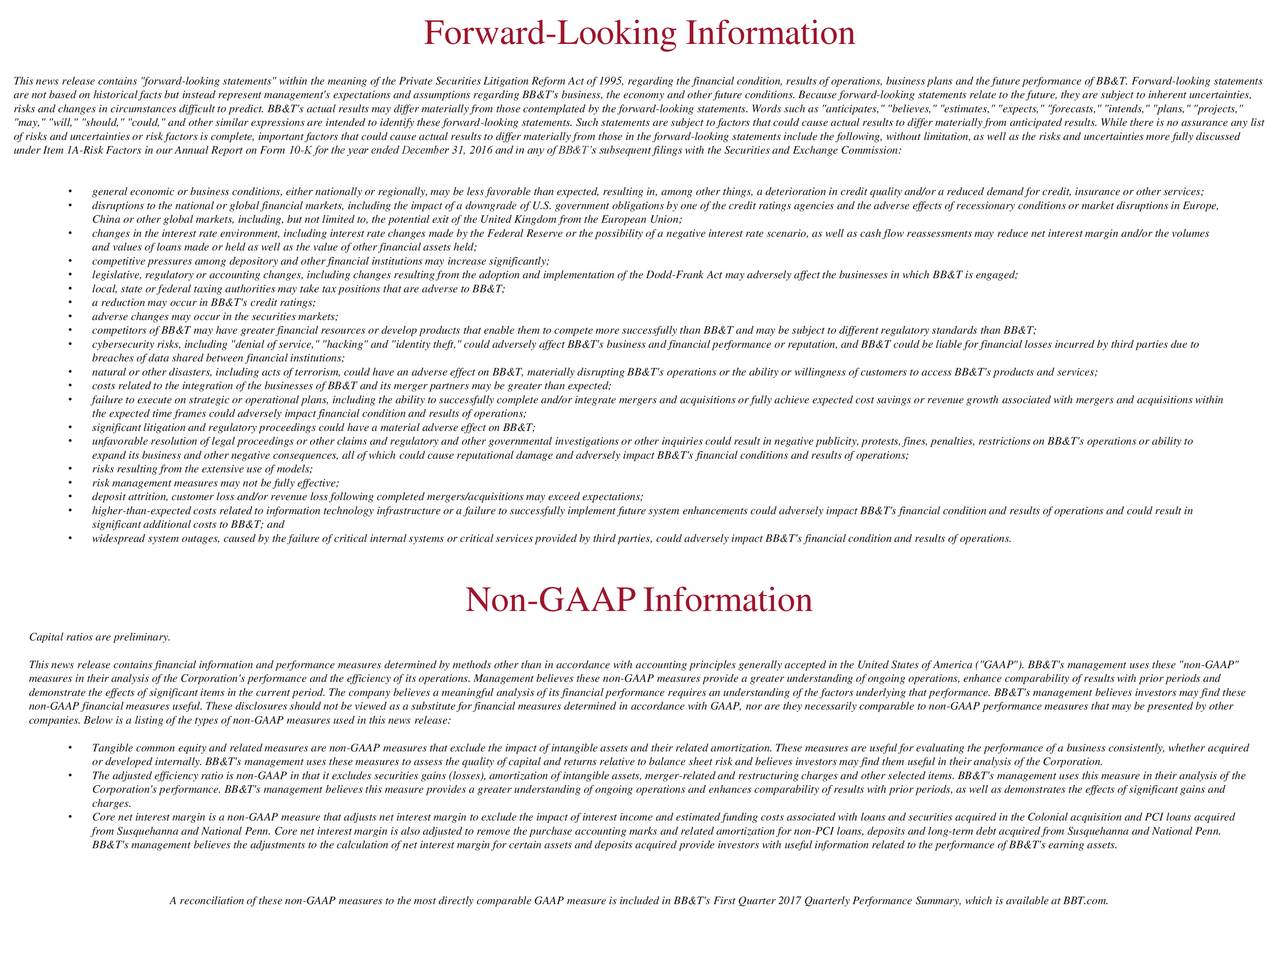 "This news release contains ""forward-looking statements"" within the meaning of the Private Securities Litigation Reform Act of 1995, regarding the financial condition, results of operations, business plans and the future performance of BB&T. Forward-looking statements are not based on historical facts but instead represent management's expectations and assumptions regarding BB&T's business, the economy and other future conditions. Because forward-looking statements relate to the future, they are subject to inherent uncertainties, risks and changes in circumstances difficult to predict. BB&T's actual results may differ materially from those contemplated by the forward-looking statements. Words such as ""anticipates,"" ""believes,"" ""estimates,"" ""expects,"" ""forecasts,"" ""intends,"" ""plans,"" ""projects,"" ""may,"" ""will,"" ""should,"" ""could,"" and other similar expressions are intended to identify these forward-looking statements. Such statements are subject to factors that could cause actual results to differ materially from anticipated results. While there is no assurance any list of risks and uncertainties or risk factors is complete, important factors that could cause actual results to differ materially from those in the forward-looking statements include the following, without limitation, as well as the risks and uncertainties more fully discussed under Item 1A-Risk Factors in our Annual Report on Form 10-K for the year ended December 31, 2016 and in any of BB&Ts subsequent filings with the Securities and Exchange Commission: general economic or business conditions, either nationally or regionally, may be less favorable than expected, resulting in, among other things, a deterioration in credit quality and/or a reduced demand for credit, insurance or other services; disruptions to the national or global financial markets, including the impact of a downgrade of U.S. government obligations by one of the credit ratings agencies and the adverse effects of recessionary conditions or market disruptions in Europe, China or other global markets, including, but not limited to, the potential exit of the United Kingdom from the European Union; changes in the interest rate environment, including interest rate changes made by the Federal Reserve or the possibility of a negative interest rate scenario, as well as cash flow reassessments may reduce net interest margin and/or the volumes and values of loans made or held as well as the value of other financial assets held; competitive pressures among depository and other financial institutions may increase significantly; legislative, regulatory or accounting changes, including changes resulting from the adoption and implementation of the Dodd-Frank Act may adversely affect the businesses in which BB&T is engaged; local, state or federal taxing authorities may take tax positions that are adverse to BB&T; a reduction may occur in BB&T's credit ratings; adverse changes may occur in the securities markets; competitors of BB&T may have greater financial resources or develop products that enable them to compete more successfully than BB&T and may be subject to different regulatory standards than BB&T; cybersecurity risks, including ""denial of service,"" ""hacking"" and ""identity theft,"" could adversely affect BB&T's business and financial performance or reputation, and BB&T could be liable for financial losses incurred by third parties due to breaches of data shared between financial institutions; natural or other disasters, including acts of terrorism, could have an adverse effect on BB&T, materially disrupting BB&T's operations or the ability or willingness of customers to access BB&T's products and services; costs related to the integration of the businesses of BB&T and its merger partners may be greater than expected; failure to execute on strategic or operational plans, including the ability to successfully complete and/or integrate mergers and acquisitions or fully achieve expected cost savings or revenue growth associated with mergers and acquisitions within the expected time frames could adversely impact financial condition and results of operations; significant litigation and regulatory proceedings could have a material adverse effect on BB&T; unfavorable resolution of legal proceedings or other claims and regulatory and other governmental investigations or other inquiries could result in negative publicity, protests, fines, penalties, restrictions on BB&T's operations or ability to expand its business and other negative consequences, all of which could cause reputational damage and adversely impact BB&T's financial conditions and results of operations; risks resulting from the extensive use of models; risk management measures may not be fully effective; deposit attrition, customer loss and/or revenue loss following completed mergers/acquisitions may exceed expectations; higher-than-expected costs related to information technology infrastructure or a failure to successfully implement future system enhancements could adversely impact BB&T's financial condition and results of operations and could result in significant additional costs to BB&T; and widespread system outages, caused by the failure of critical internal systems or critical services provided by third parties, could adversely impact BB&T's financial condition and results of operations. Non-GAAPInformation Capital ratios are preliminary. This news release contains financial information and performance measures determined by methods other than in accordance with accounting principles generally accepted in the United States of America (""GAAP""). BB&T's management uses these ""non-GAAP"" measures in their analysis of the Corporation's performance and the efficiency of its operations. Management believes these non-GAAP measures provide a greater understanding of ongoing operations, enhance comparability of results with prior periods and demonstrate the effects of significant items in the current period. The company believes a meaningful analysis of its financial performance requires an understanding of the factors underlying that performance. BB&T's management believes investors may find these non-GAAP financial measures useful. These disclosures should not be viewed as a substitute for financial measures determined in accordance with GAAP, nor are they necessarily comparable to non-GAAP performance measures that may be presented by other companies. Below is a listing of the types of non-GAAP measures used in this news release: Tangible common equity and related measures are non-GAAP measures that exclude the impact of intangible assets and their related amortization. These measures are useful for evaluating the performance of a business consistently, whether acquired or developed internally. BB&T's management uses these measures to assess the quality of capital and returns relative to balance sheet risk and believes investors may find them useful in their analysis of the Corporation. The adjusted efficiency ratio is non-GAAP in that it excludes securities gains (losses), amortization of intangible assets, merger-related and restructuring charges and other selected items. BB&T's management uses this measure in their analysis of the Corporation's performance. BB&T's management believes this measure provides a greater understanding of ongoing operations and enhances comparability of results with prior periods, as well as demonstrates the effects of significant gains and charges. Core net interest margin is a non-GAAP measure that adjusts net interest margin to exclude the impact of interest income and estimated funding costs associated with loans and securities acquired in the Colonial acquisition and PCI loans acquired from Susquehanna and National Penn. Core net interest margin is also adjusted to remove the purchase accounting marks and related amortization for non-PCI loans, deposits and long-term debt acquired from Susquehanna and National Penn. BB&T's management believes the adjustments to the calculation of net interest margin for certain assets and deposits acquired provide investors with useful information related to the performance of BB&T's earning assets. A reconciliation of these non-GAAP measures to the most directly comparable GAAP measure is included in BB&T's First Quarter 2017 Quarterly Performance Summary, which is available at BBT.com."